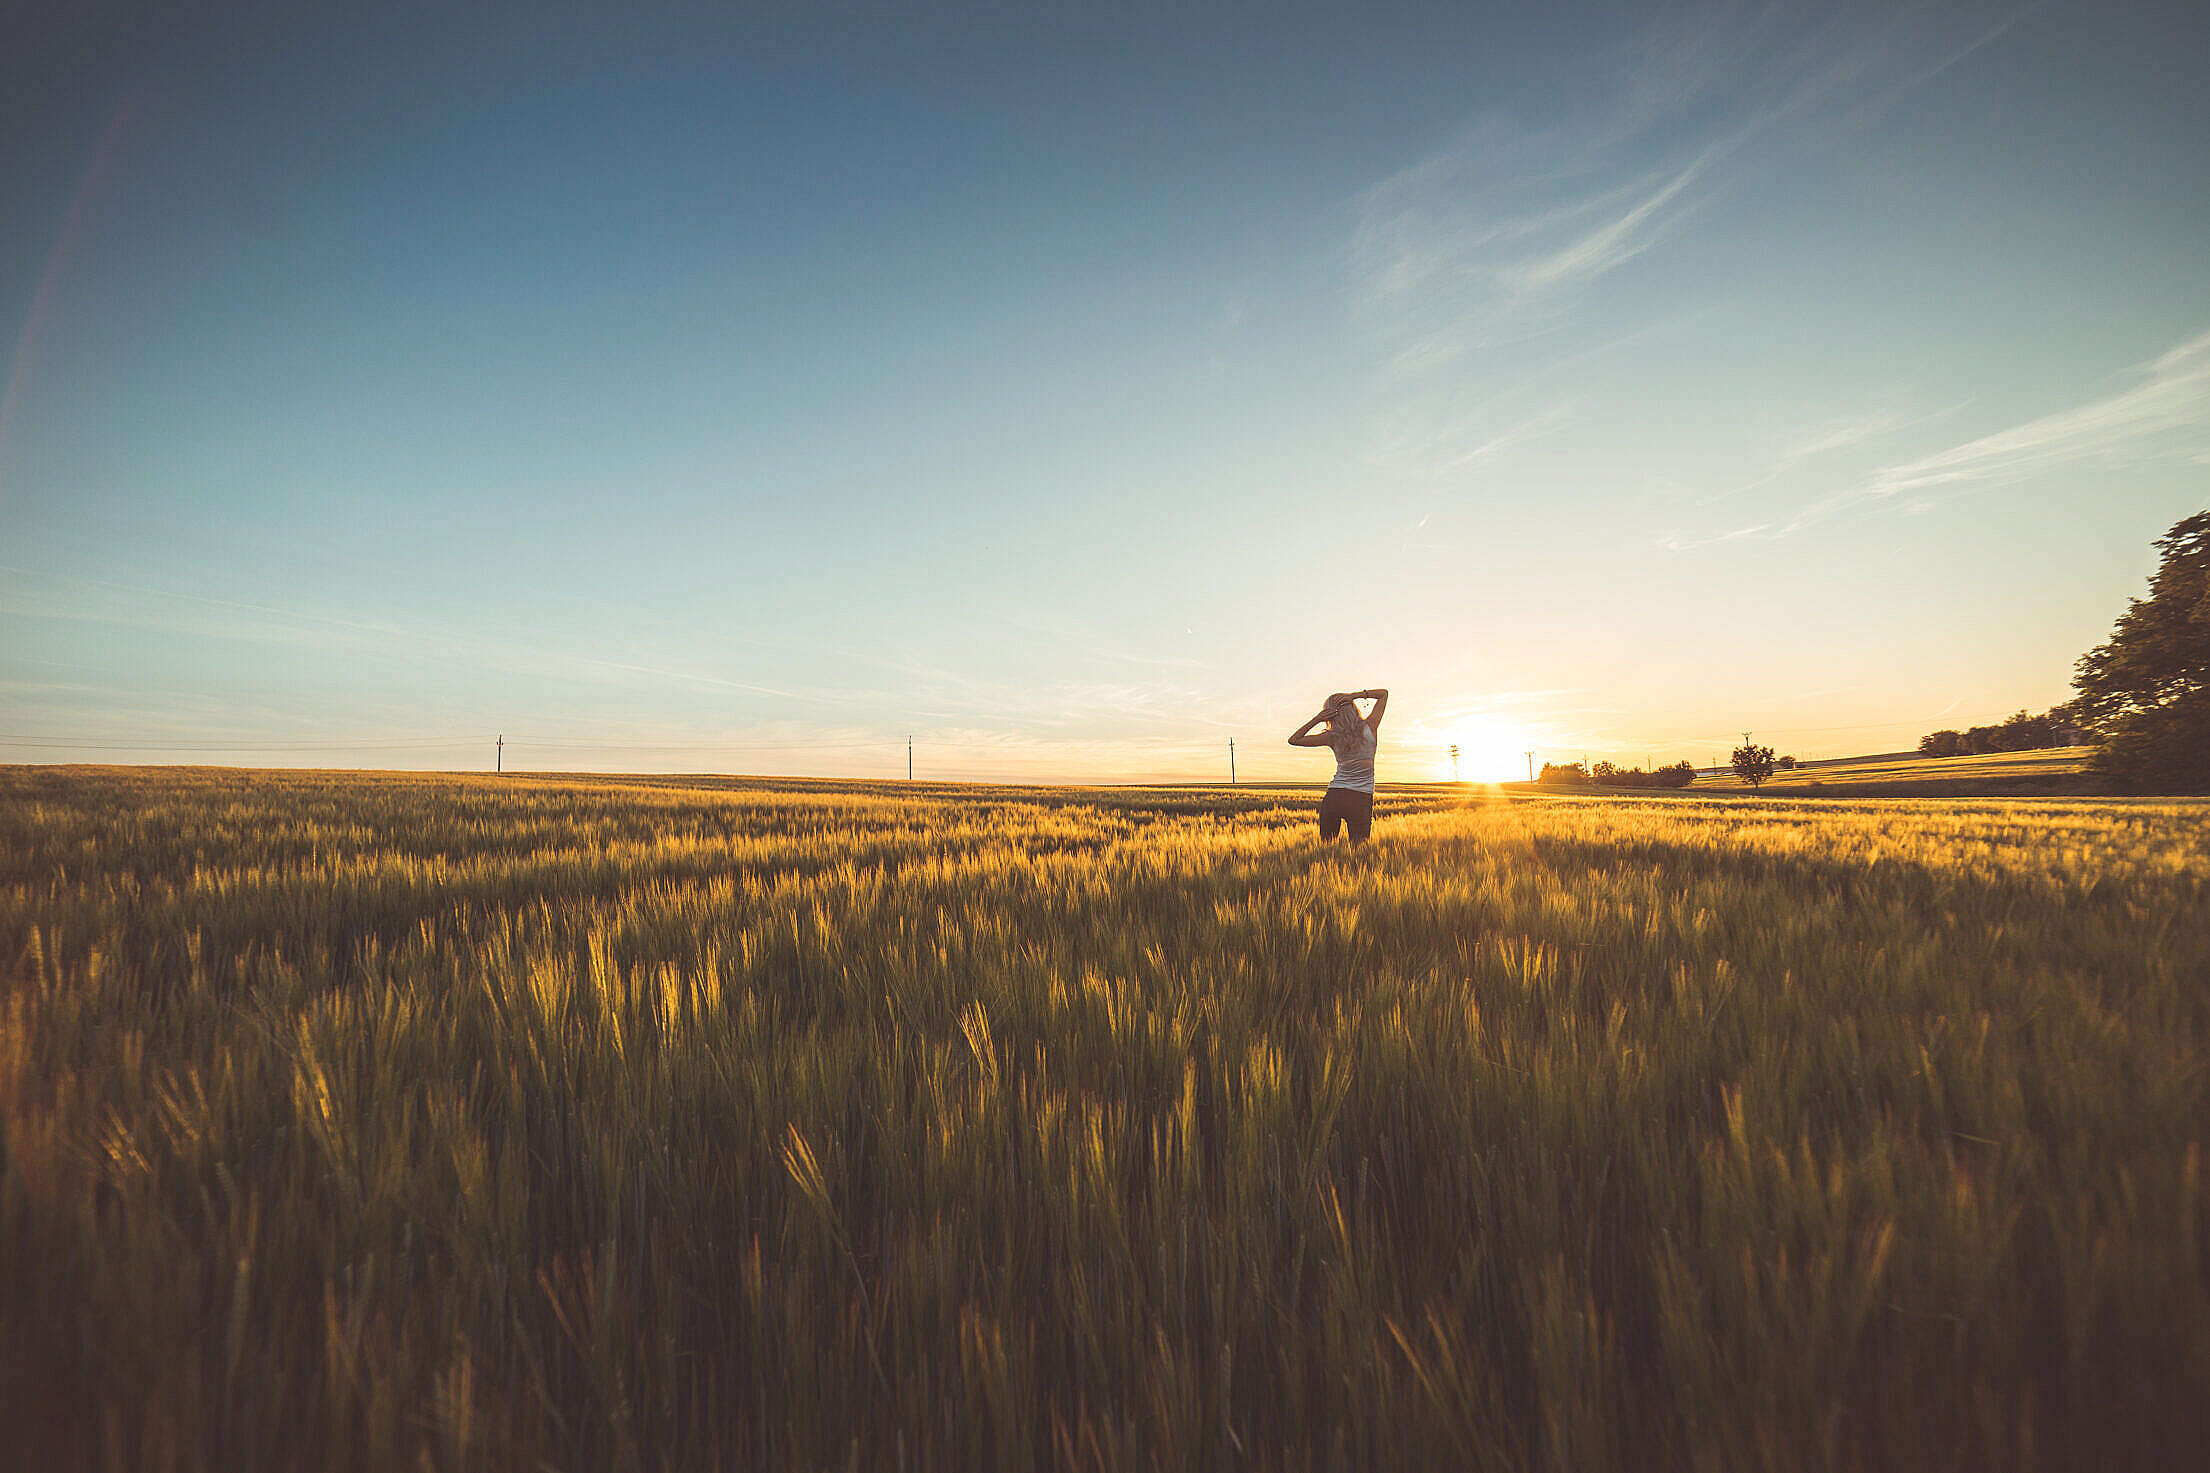 Happy Girl Dancing in a Wheat Field on Sunset #2 Free Stock Photo